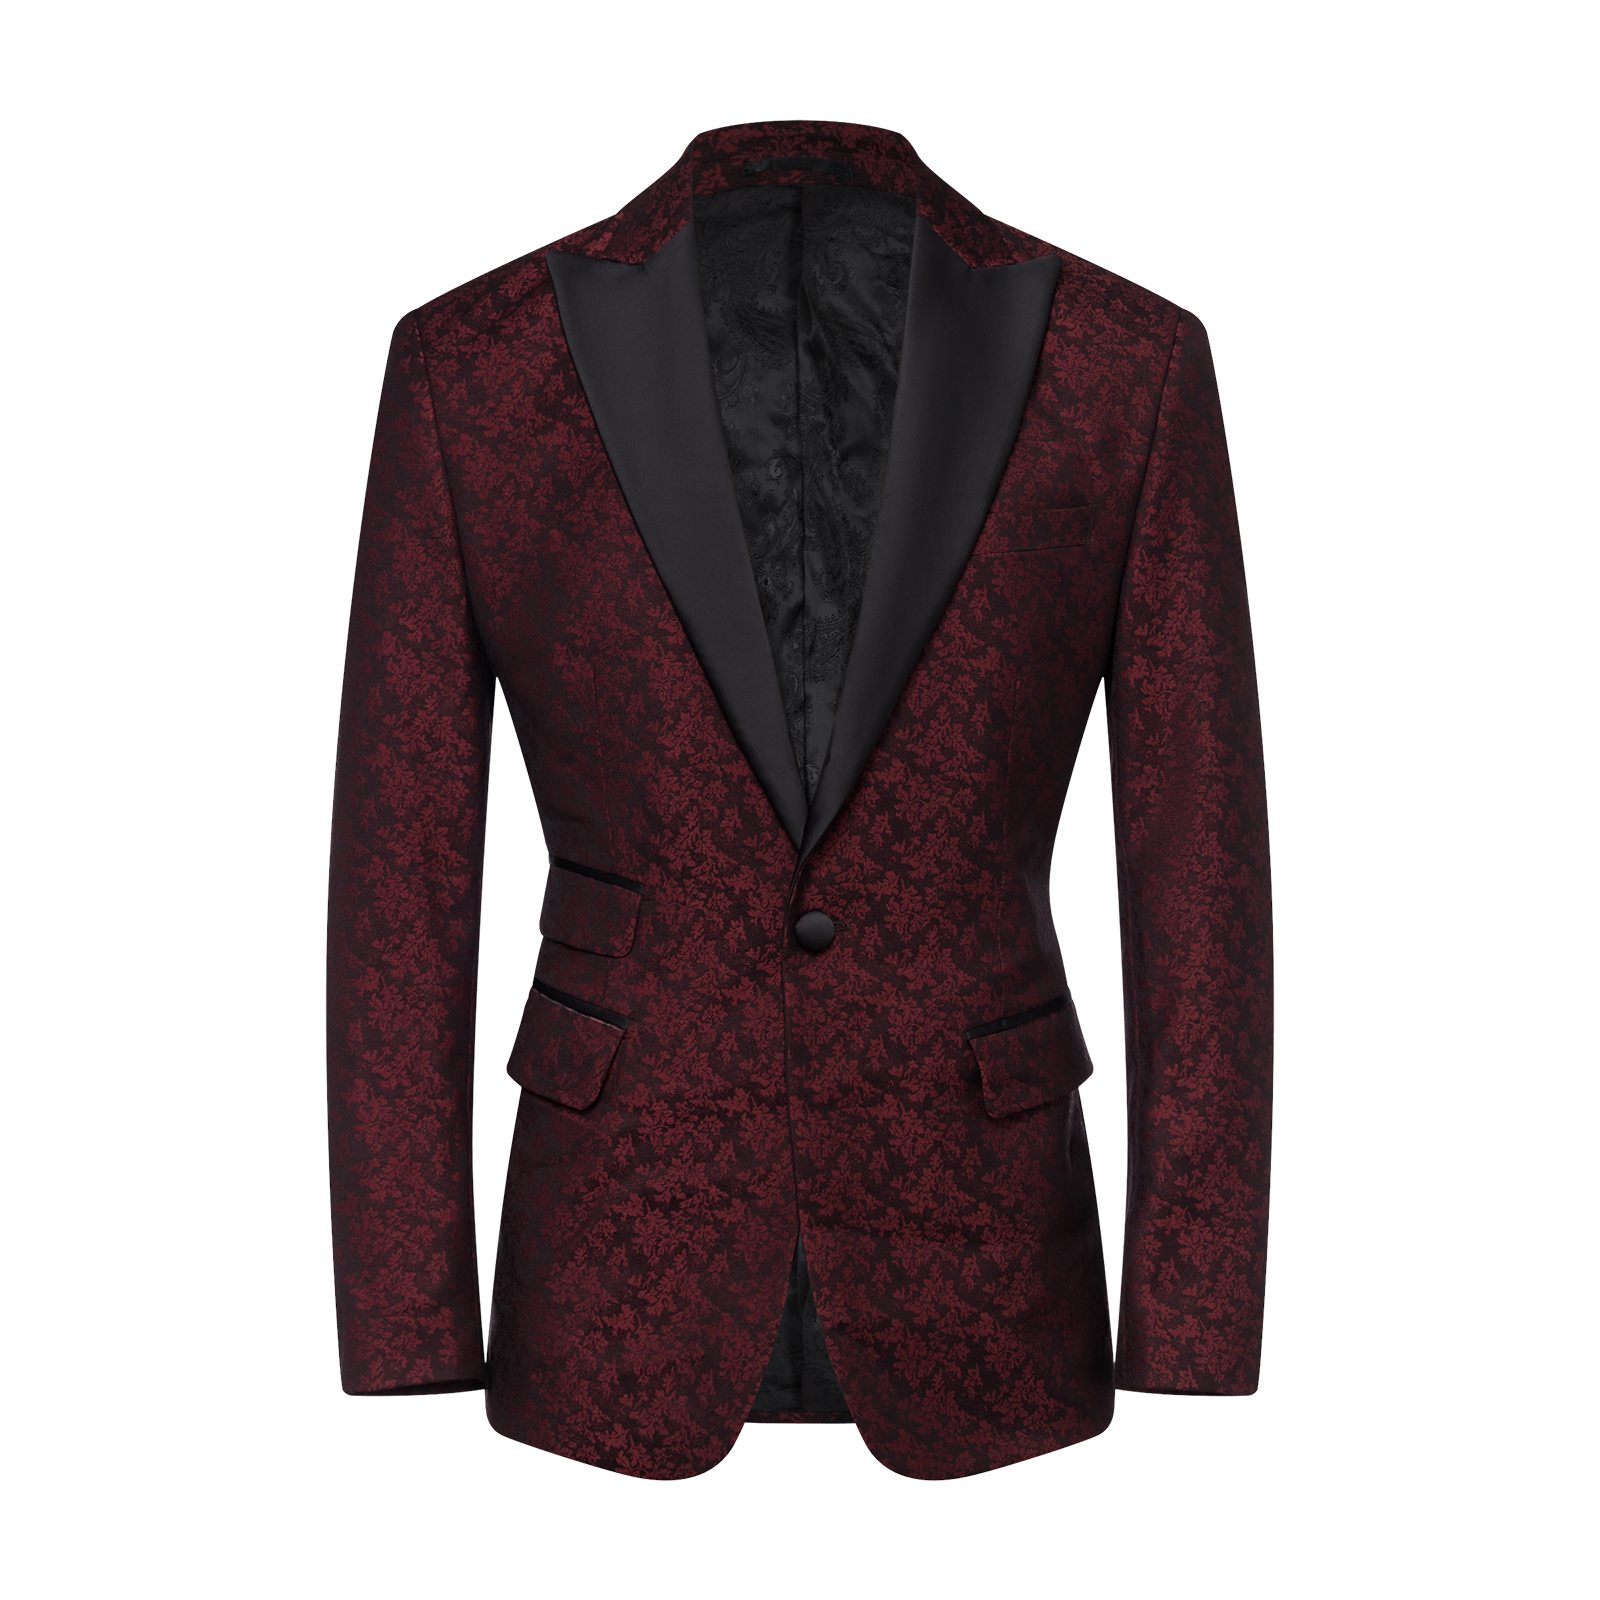 jacket product photo, suit product photo, ghost mannequinn photography